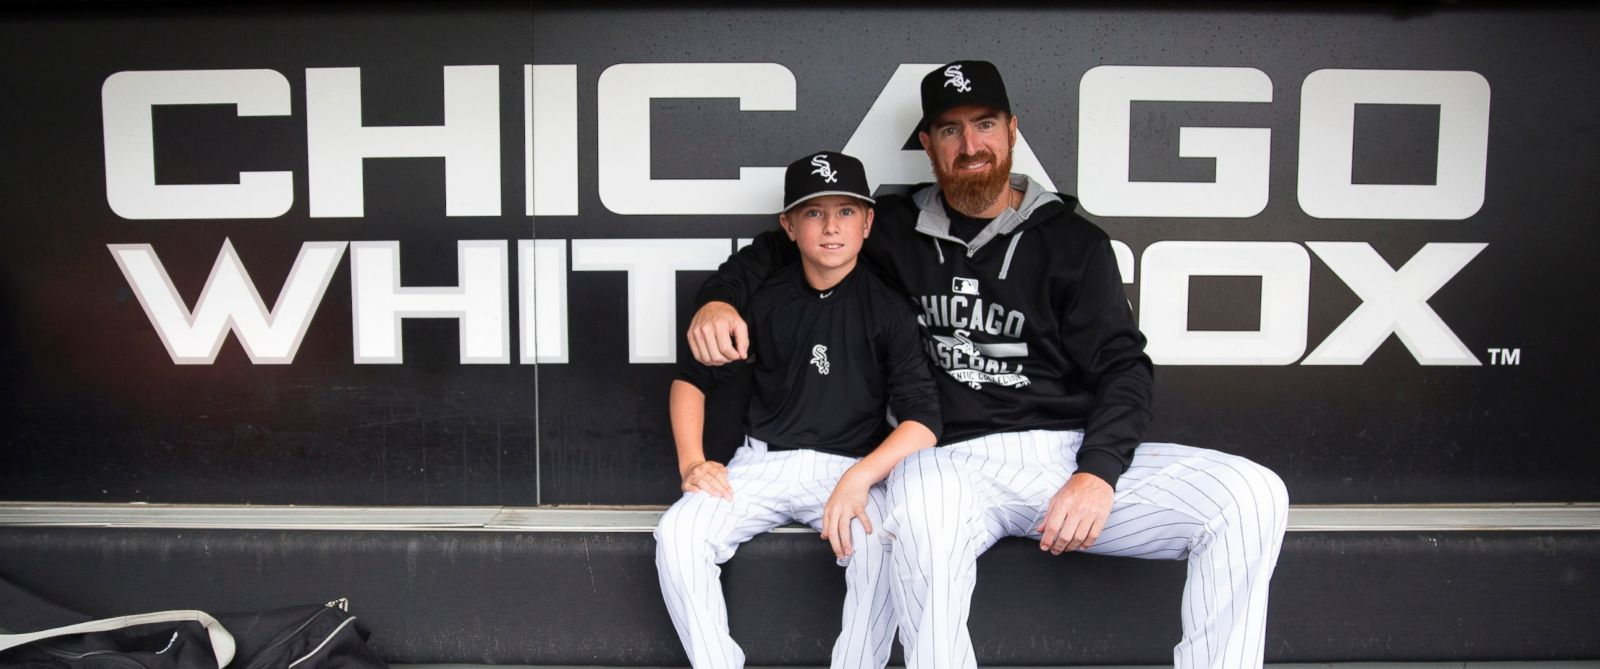 PHOTO: Chicago White Sox designated hitter Adam LaRoche sits with his son Drake, 13, in the White Sox dugout at U.S. Cellular Field before a game against the Houston Astros on June 8, 2015 in Chicago.